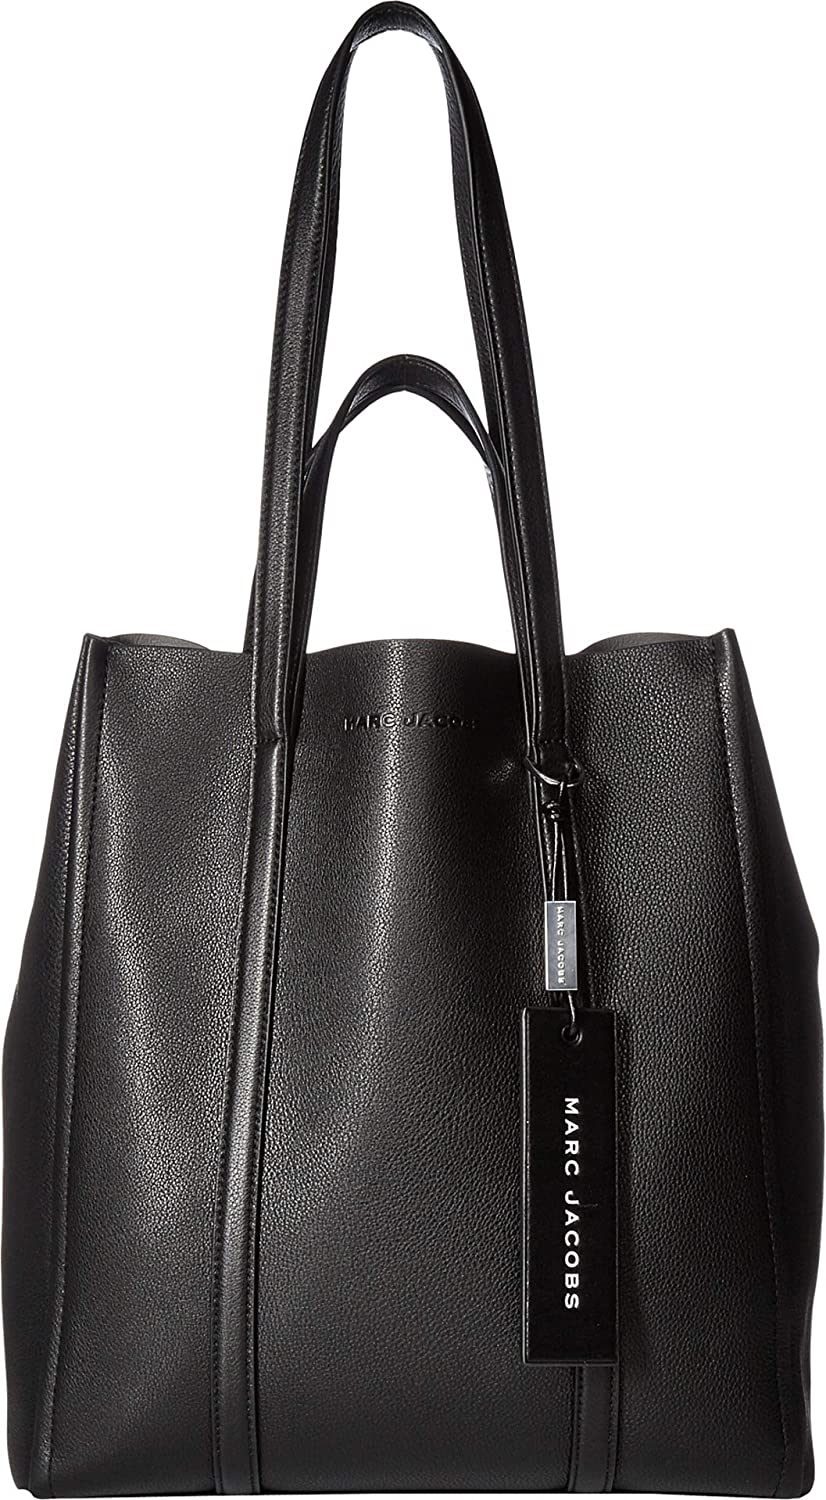 82501495b52a Amazon.com  Marc Jacobs Women s The Tag Tote 31